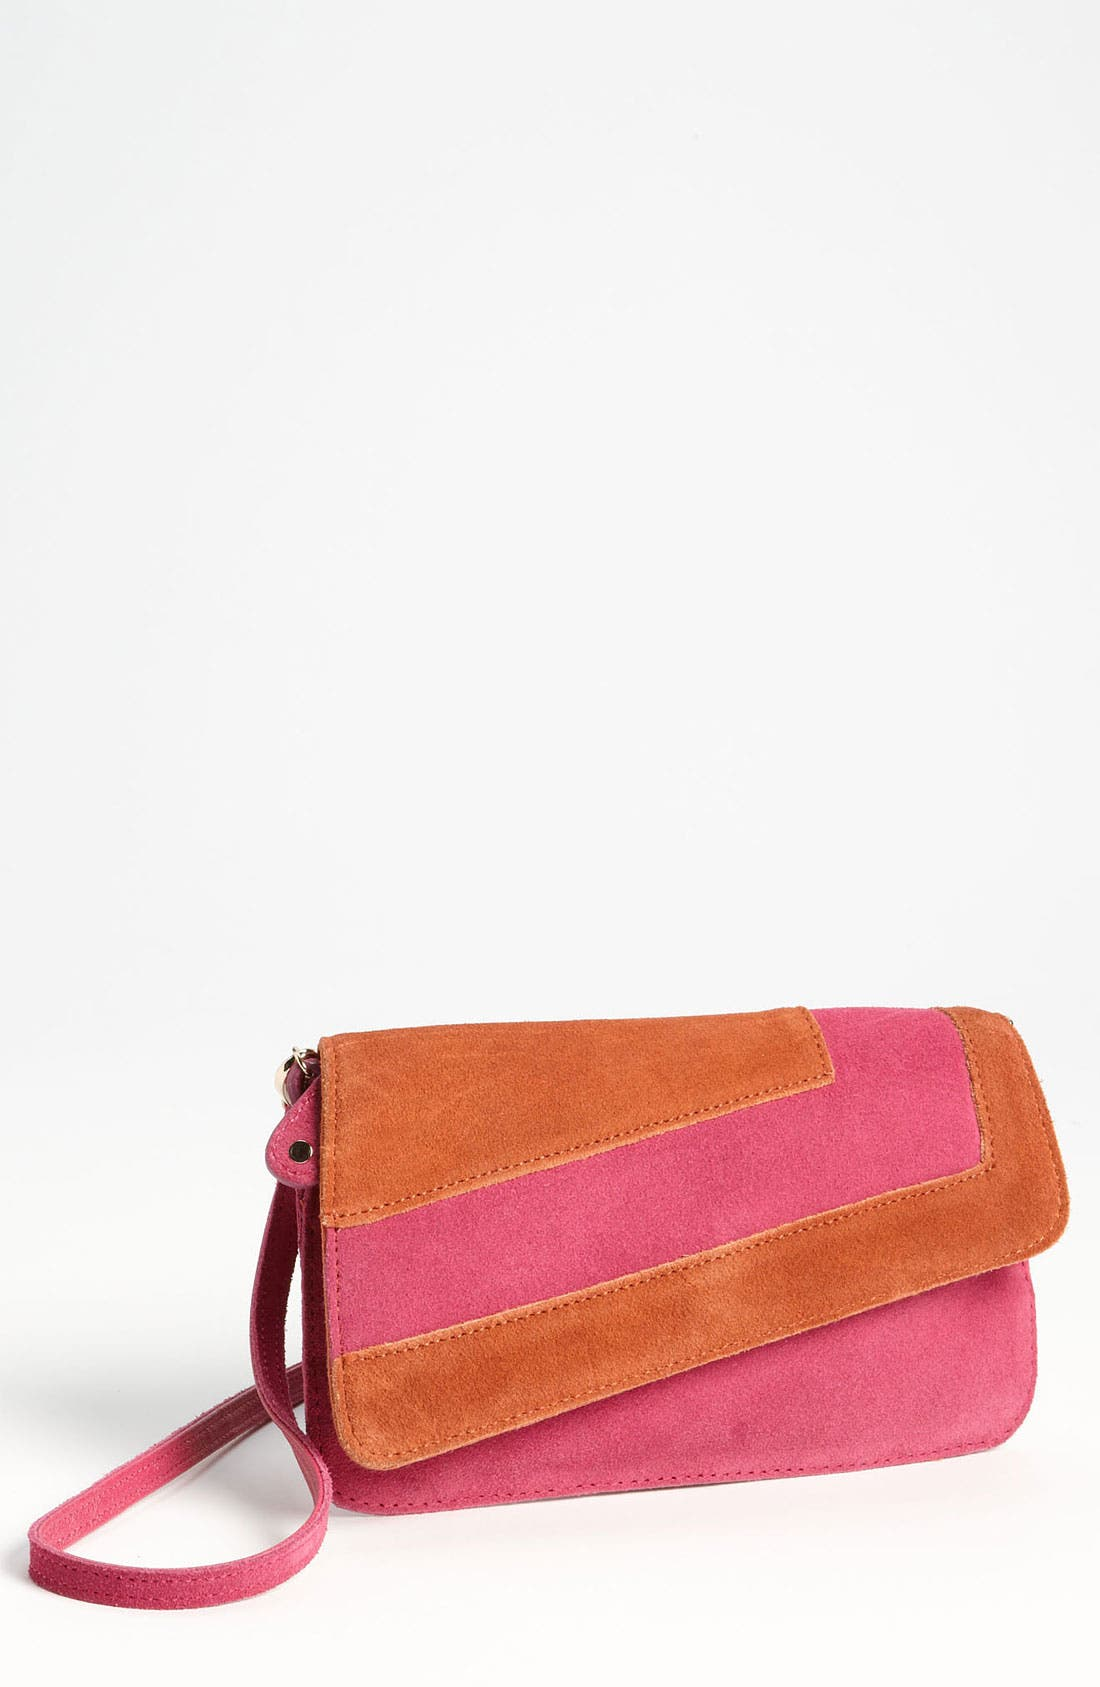 Main Image - Danielle Nicole 'Madison' Suede Crossbody Bag